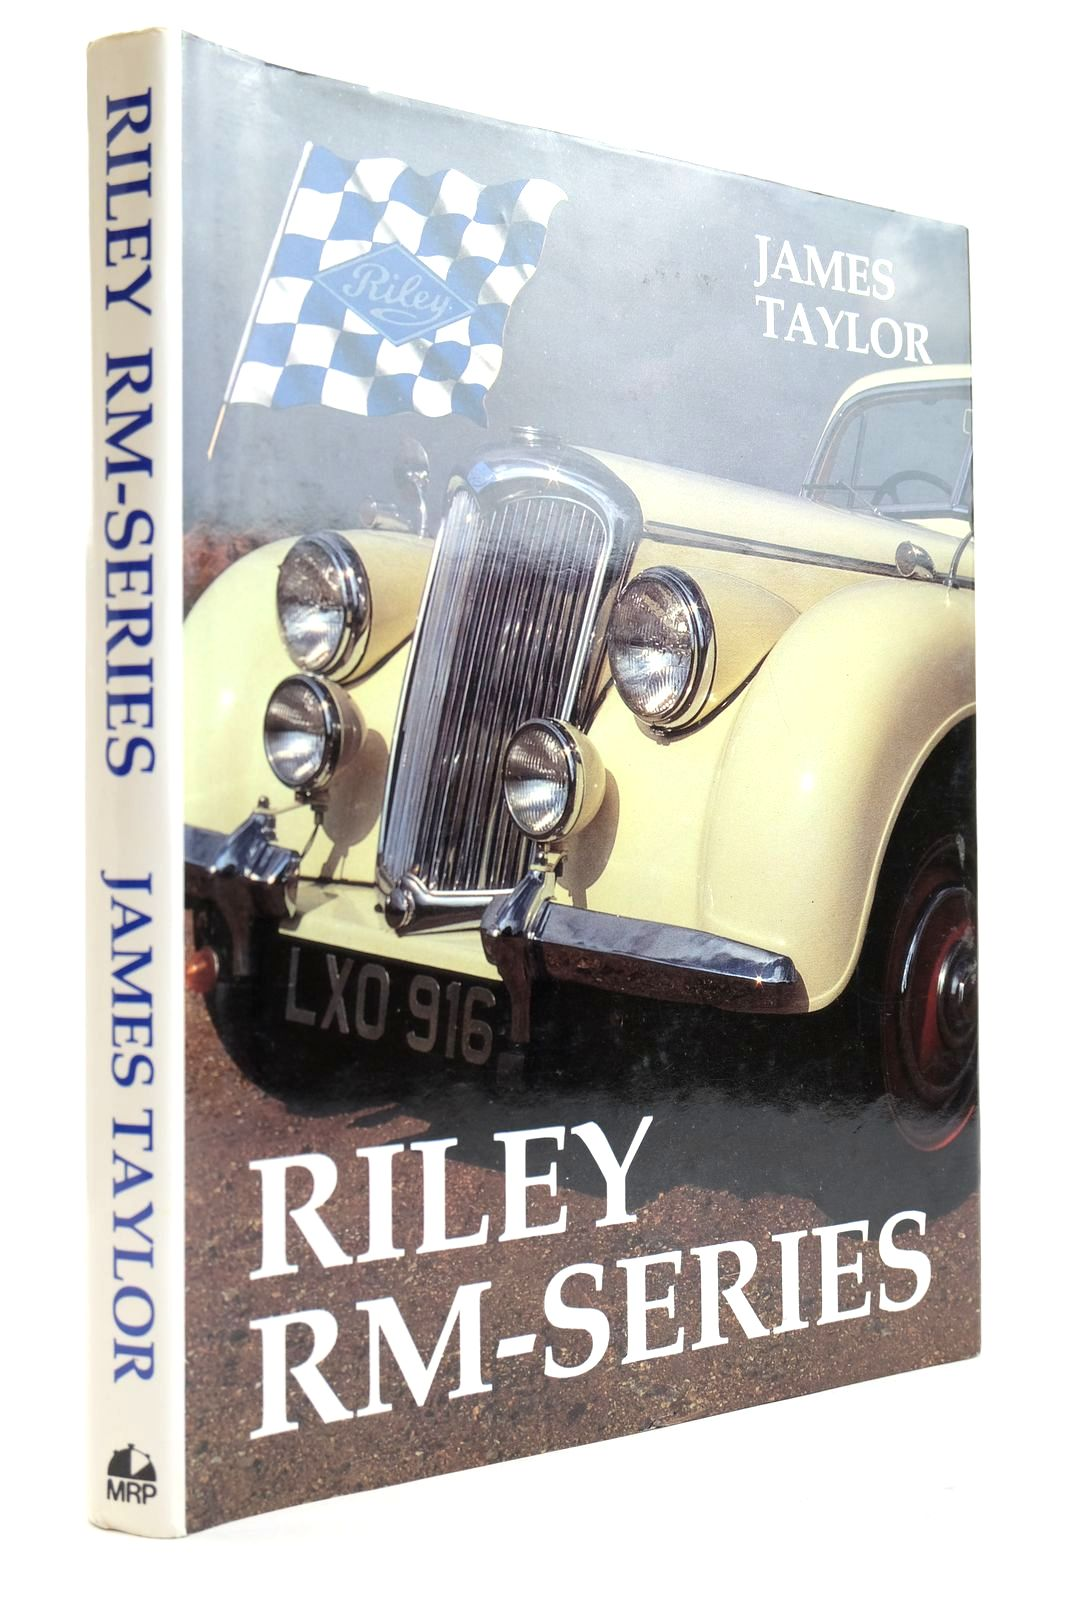 Photo of RILEY RM-SERIES written by Taylor, James published by Motor Racing Publications Ltd. (STOCK CODE: 2132558)  for sale by Stella & Rose's Books